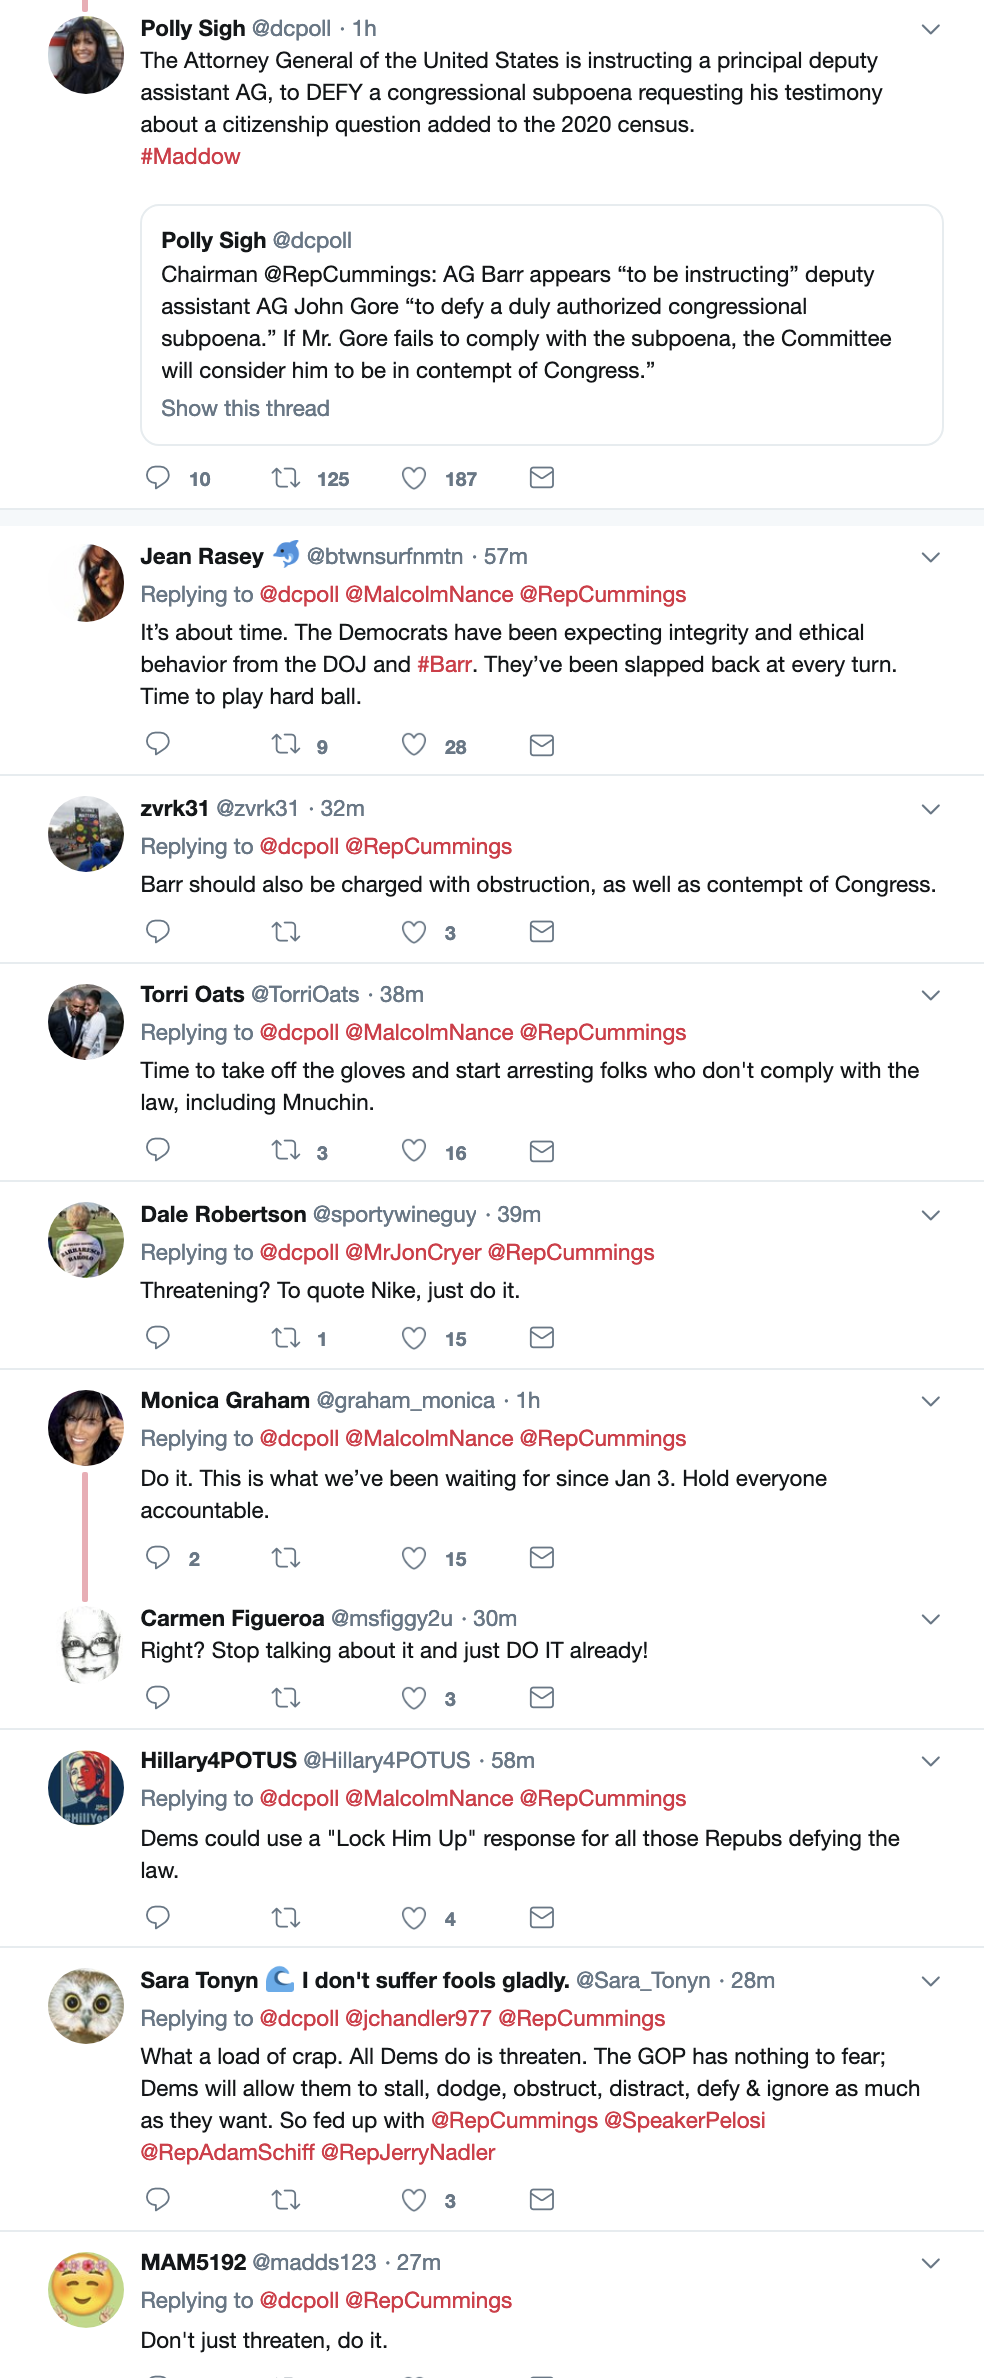 Screen-Shot-2019-04-11-at-3.25.50-PM Elijah Cummings Takes On AG Barr With Contempt of Congress Corruption Crime Domestic Policy Donald Trump Election 2020 Top Stories